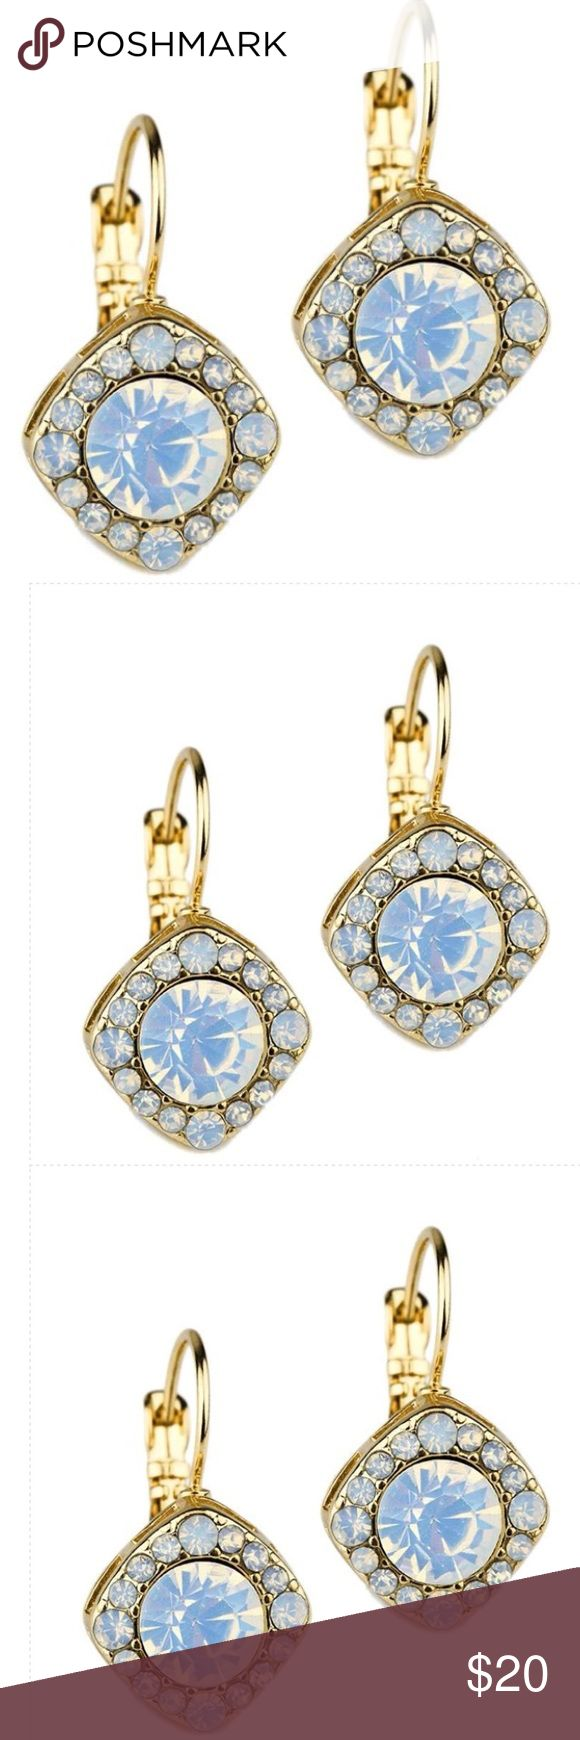 💃🏾Just In💃🏾 French Clip Crystal Earrings French clip crystal earring Size: 1/2 x 3/4 inches 📦Purchase by 4:00 pm Central Time for same day shipping. Jewelry Earrings